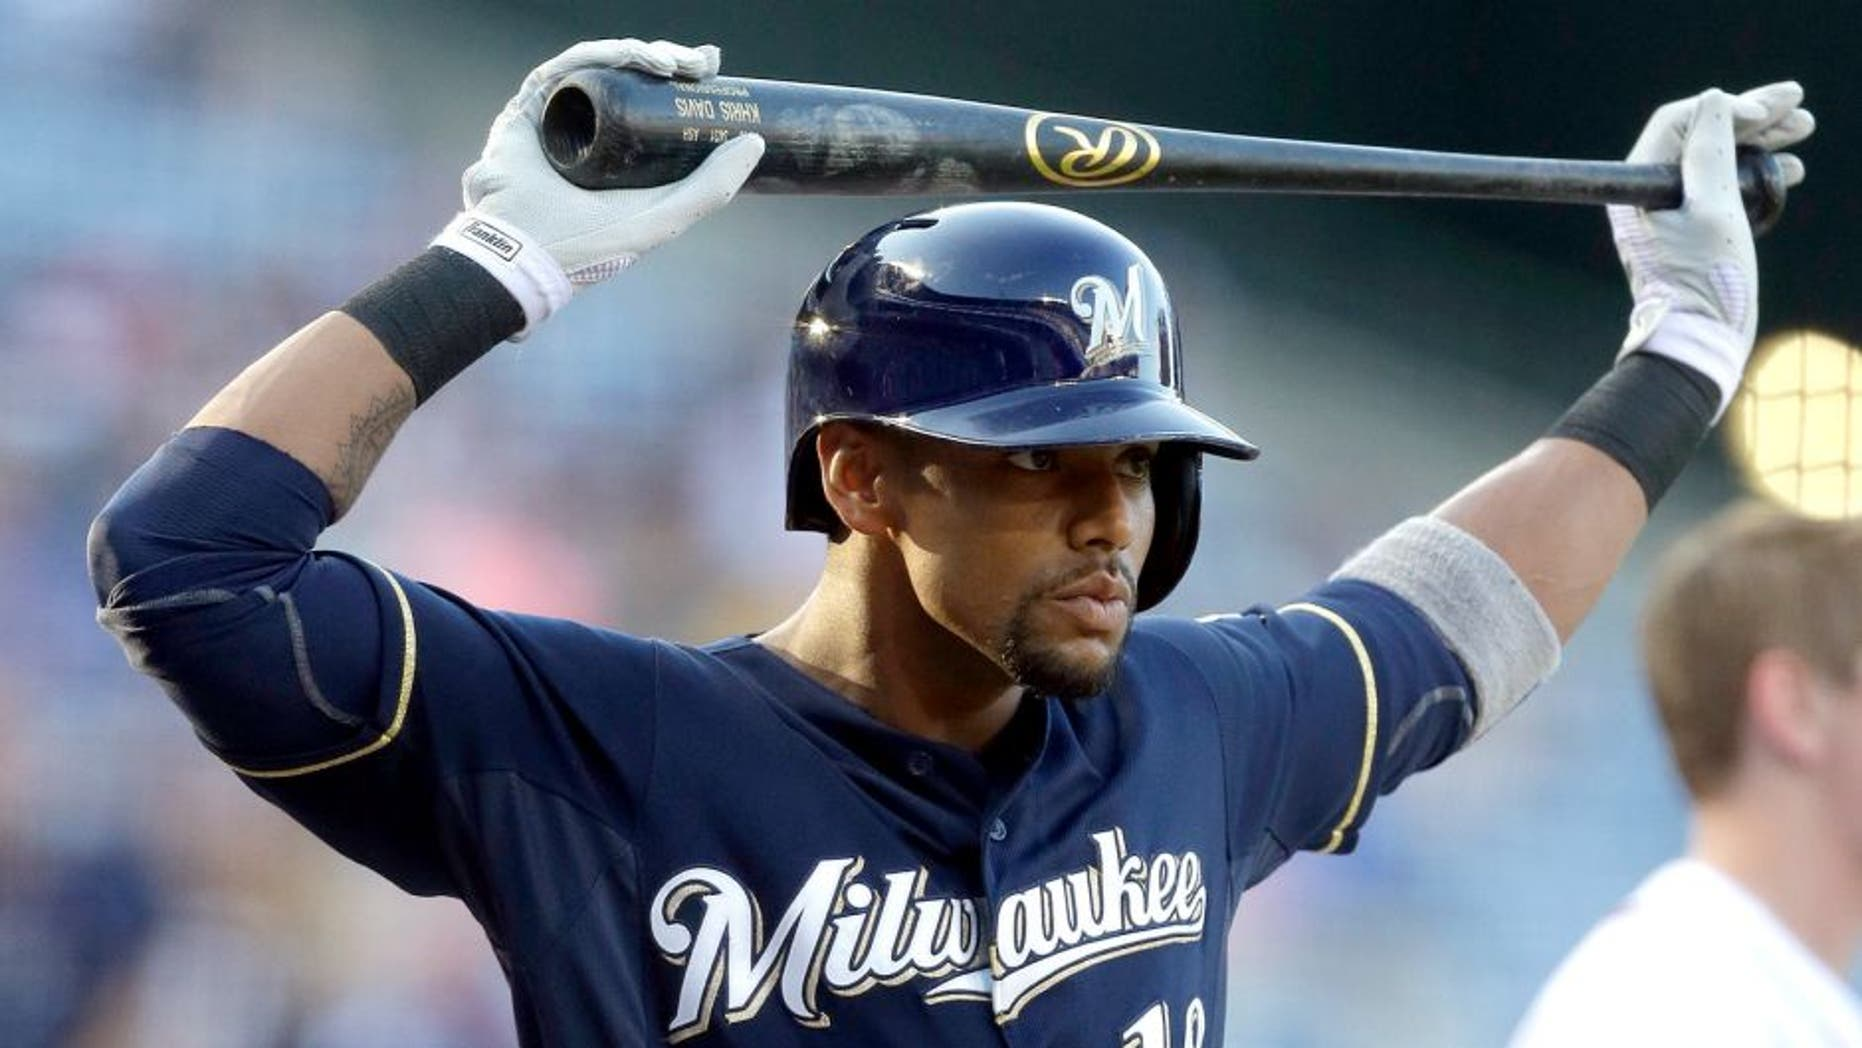 ATLANTA GA - MAY 22: Khris Davis #18 of the Milwaukee Brewers stretches in the batter's box during the first inning of a baseball game on May 22, 2015 at Turner Field in Atlanta, Georgia. (Photo by Butch Dill/Getty Images)